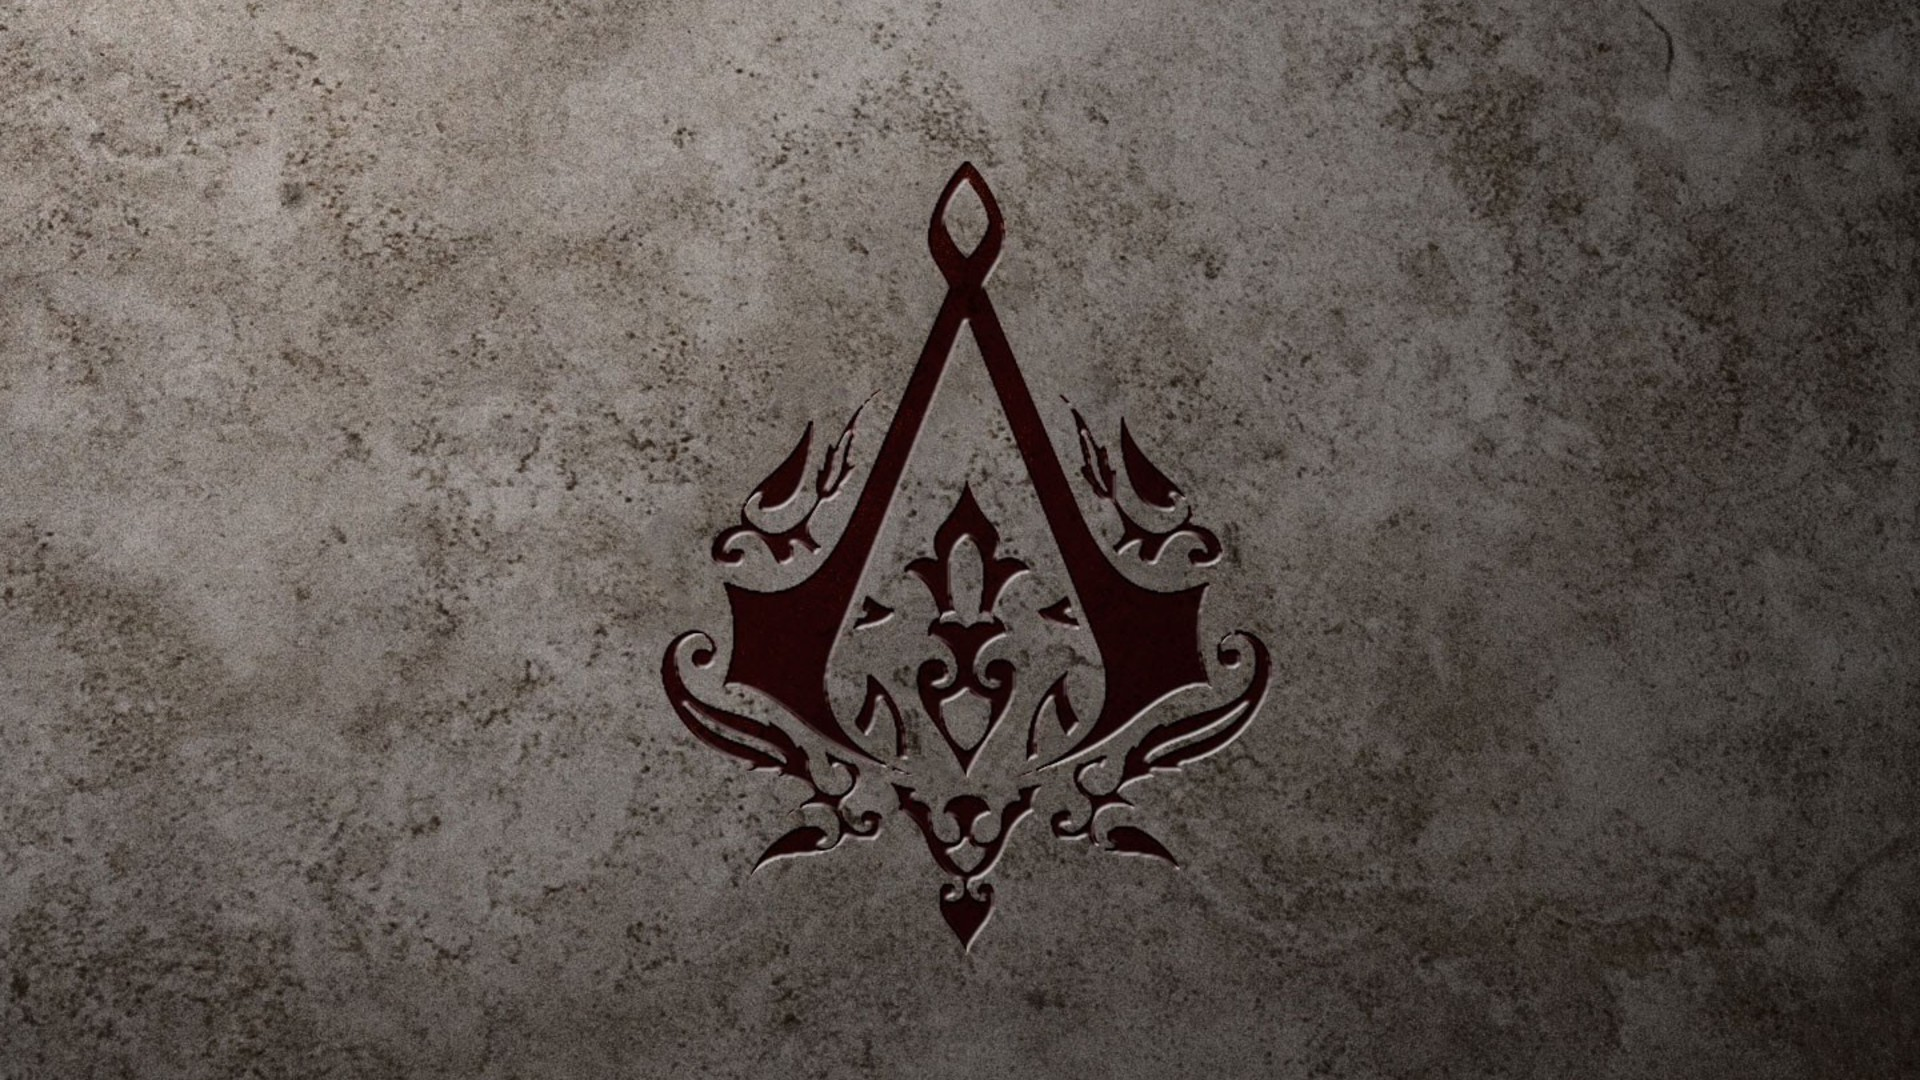 assassins-creed-logos-1080p-wallpapers | wallpaper.wiki